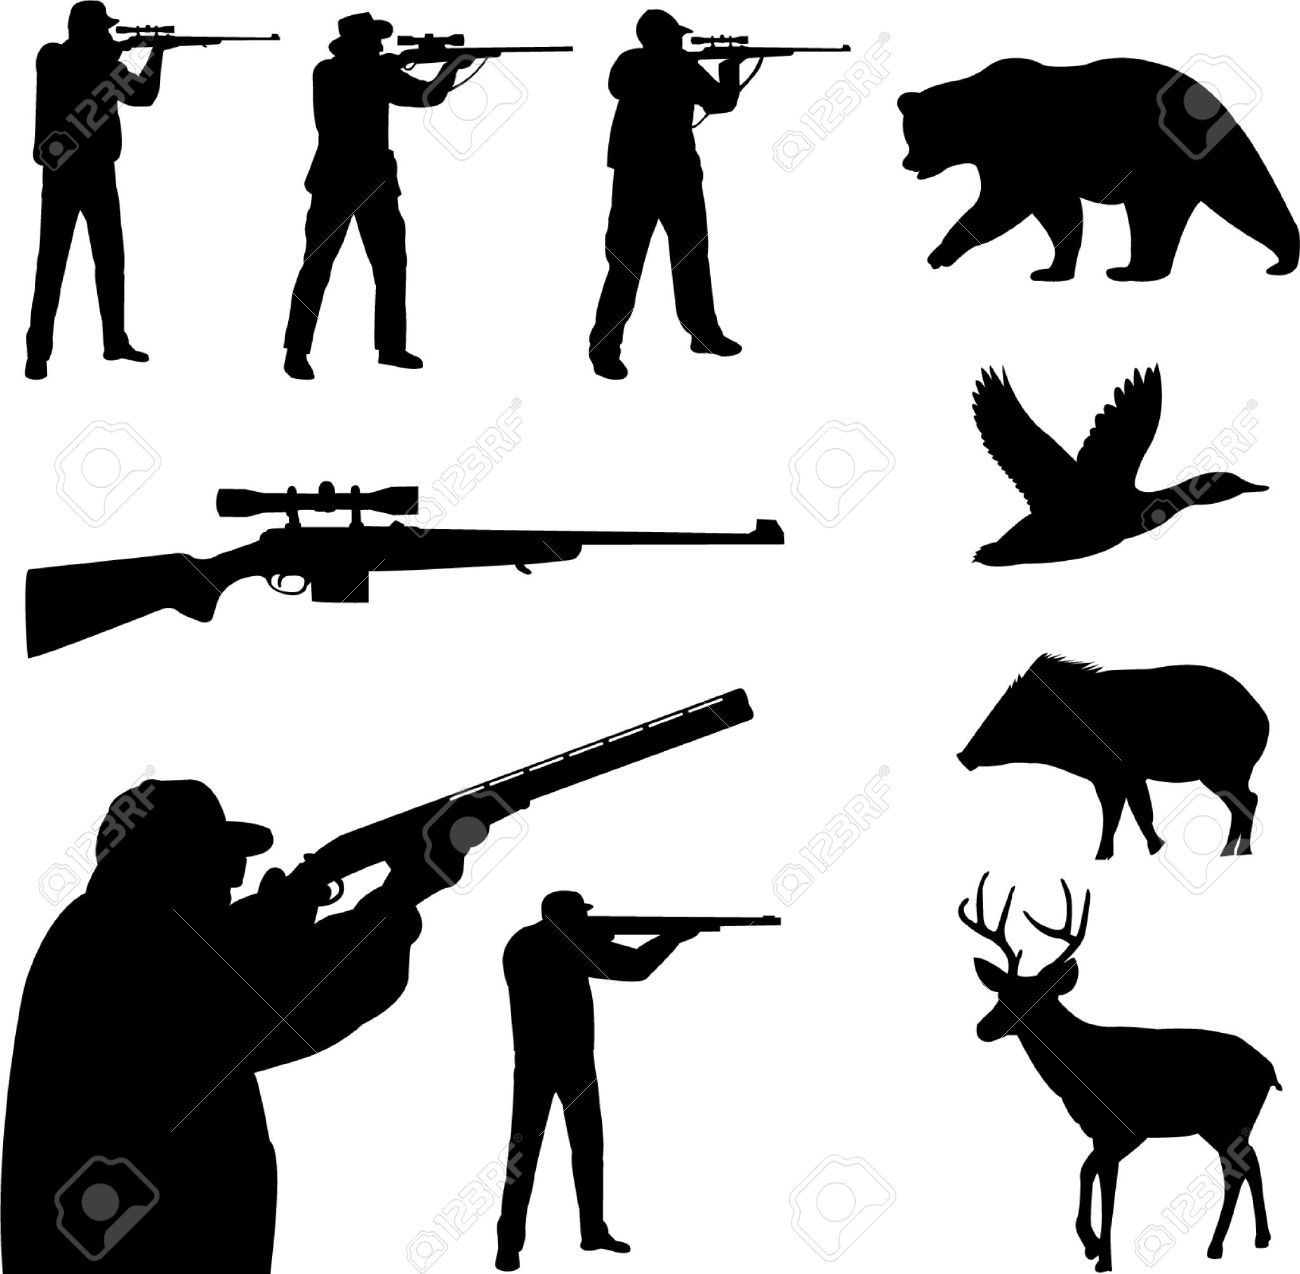 Hunter clipart deer rifle. Hunting cliparts stock vector